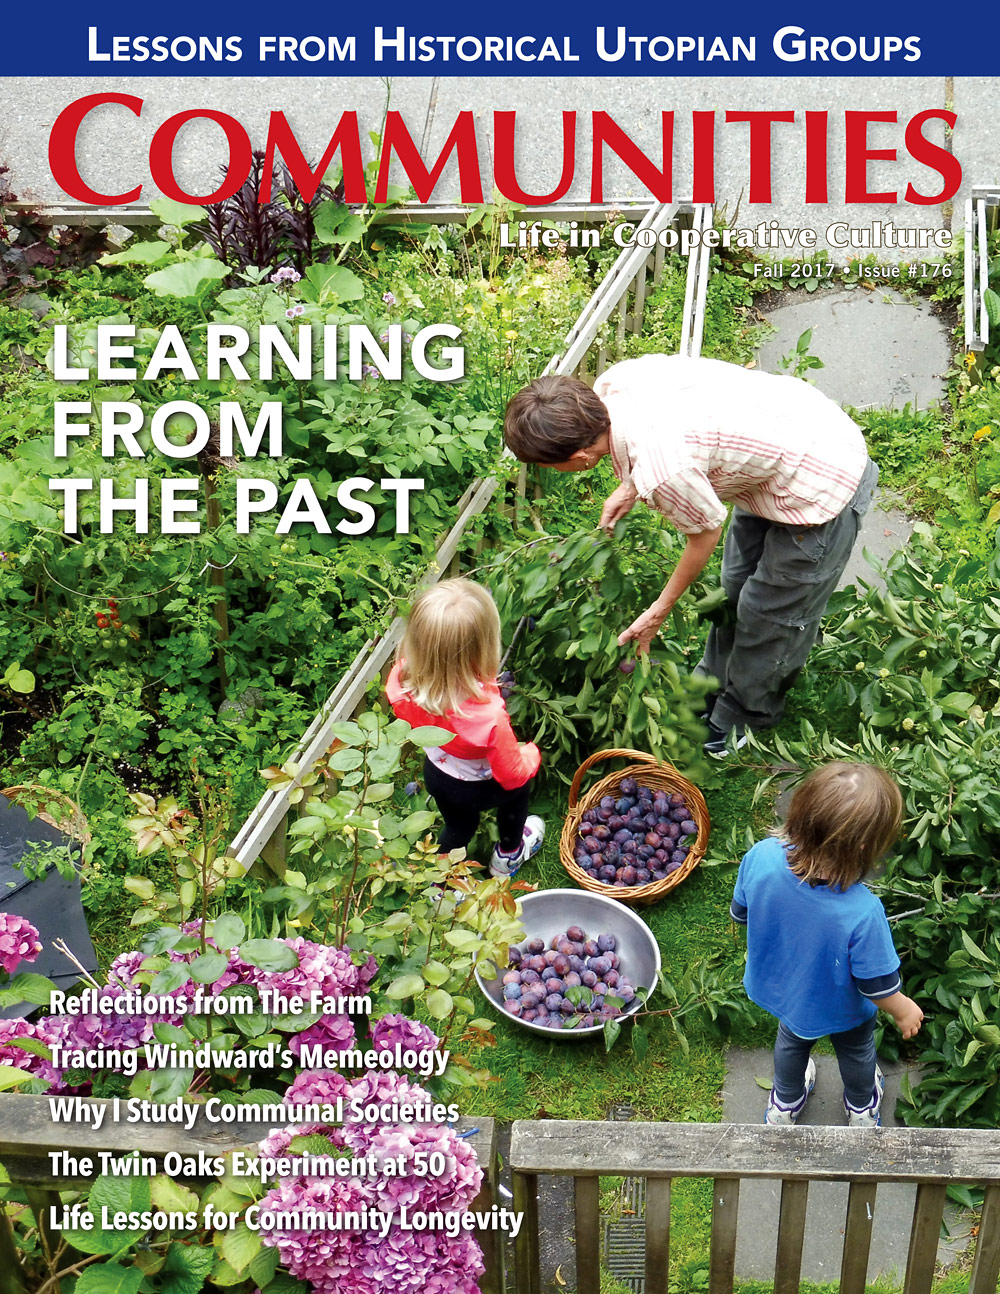 Communities magazine fall #176